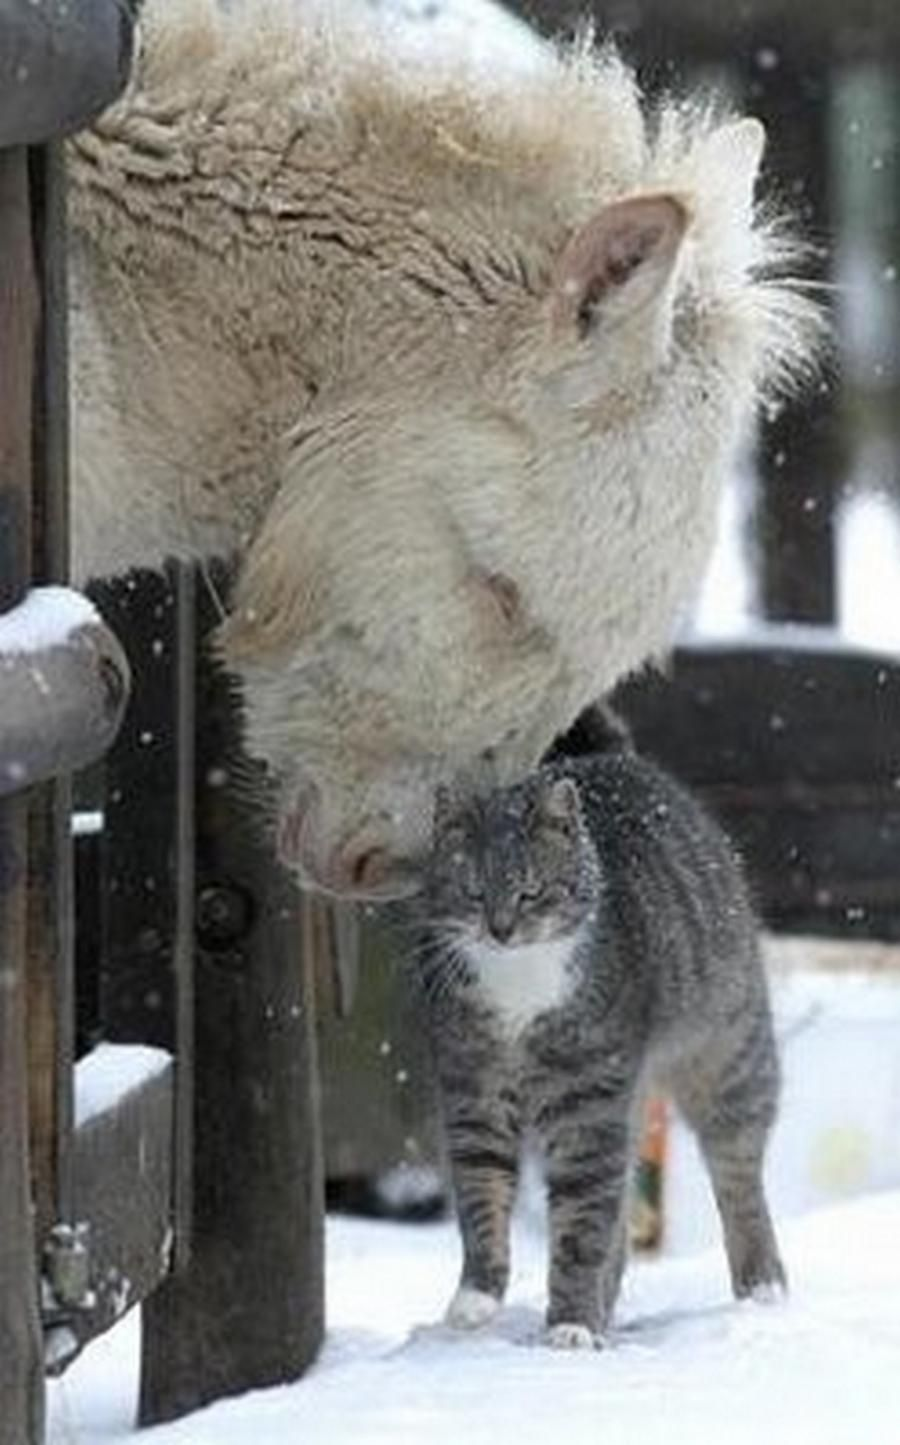 Bison and Cat